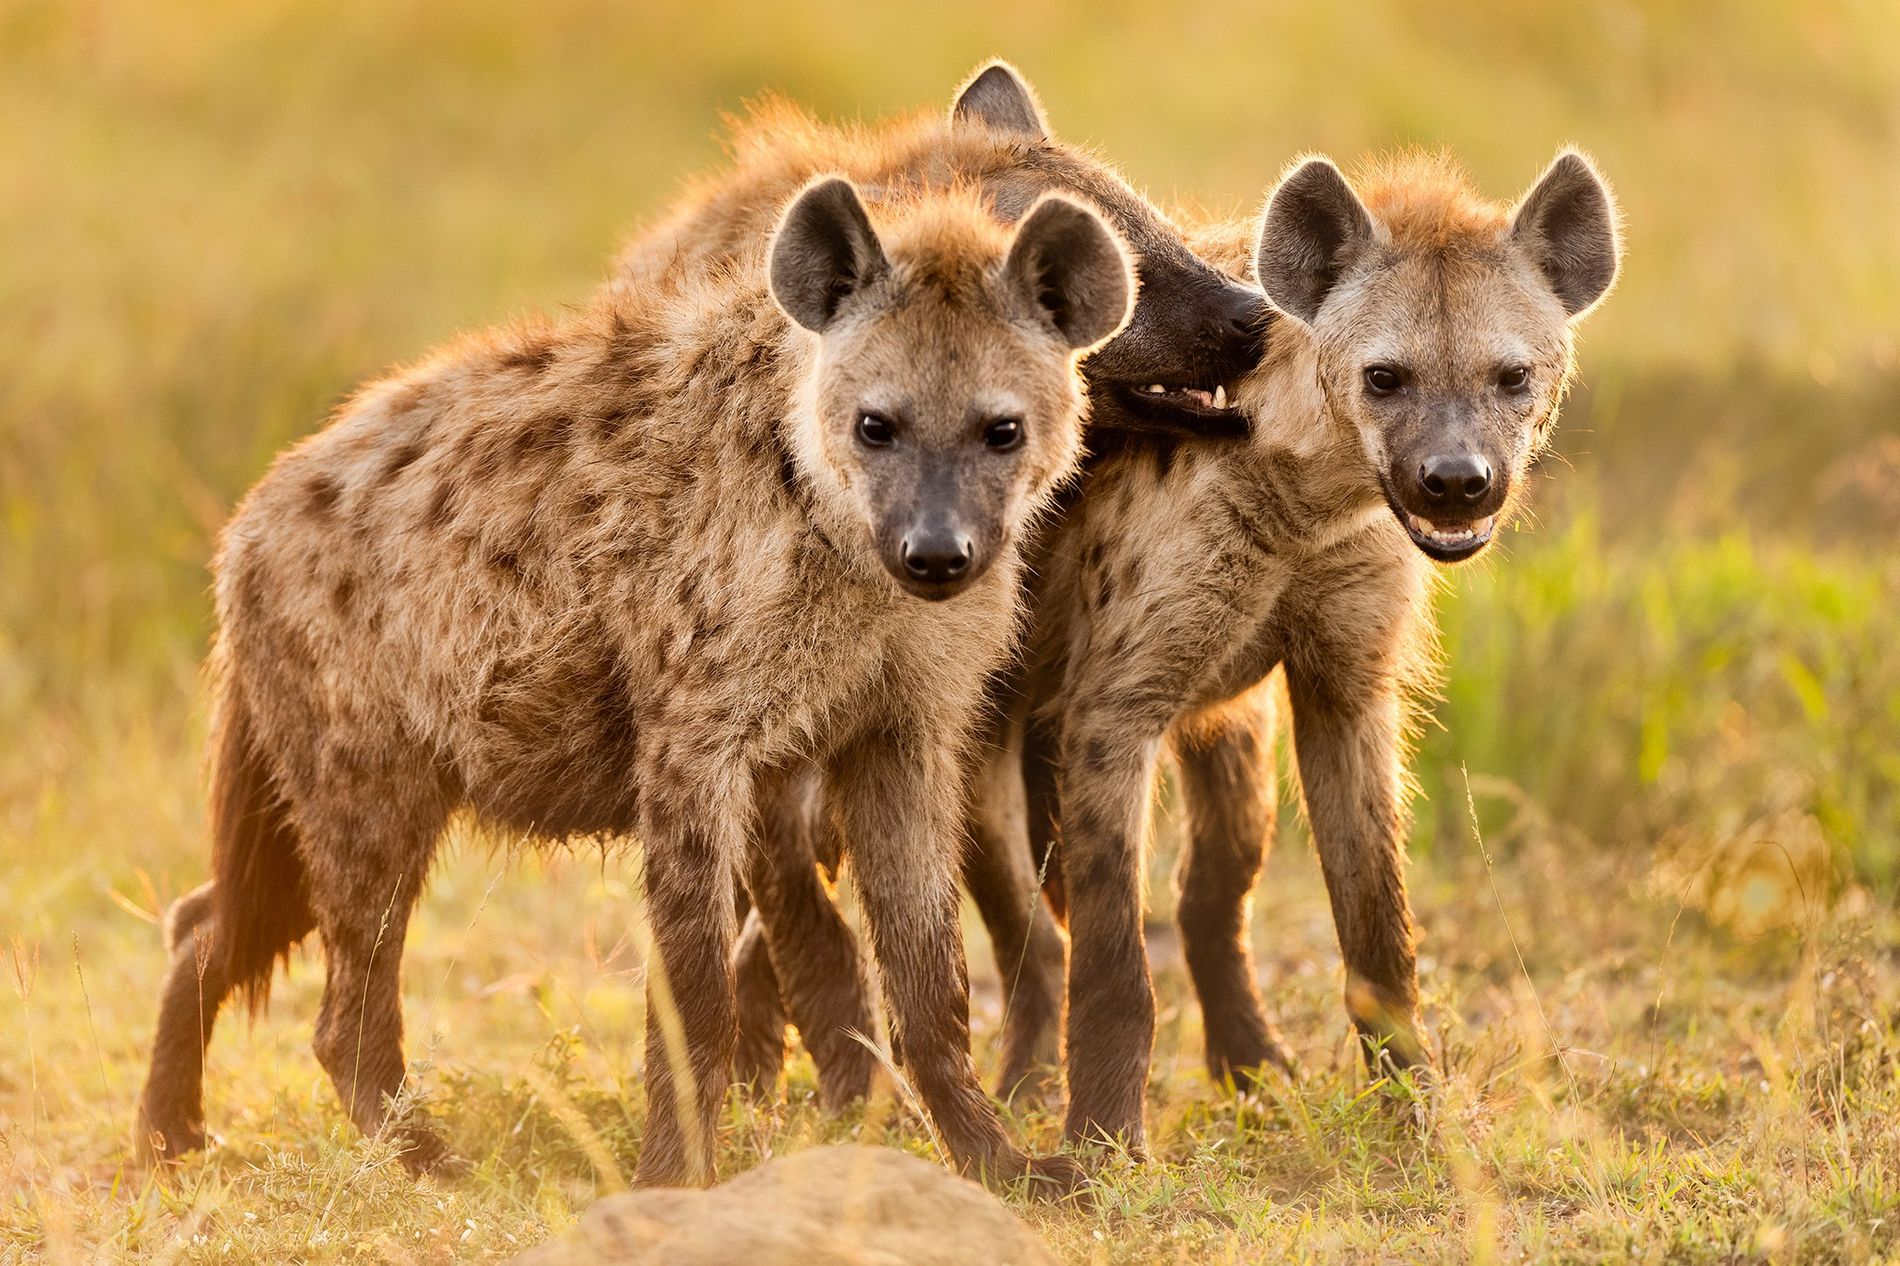 Spotted hyenas socialise at their den in Kenya's Masai Mara National Reserve. Parents spend more time playing with their cubs than do other carnivores.